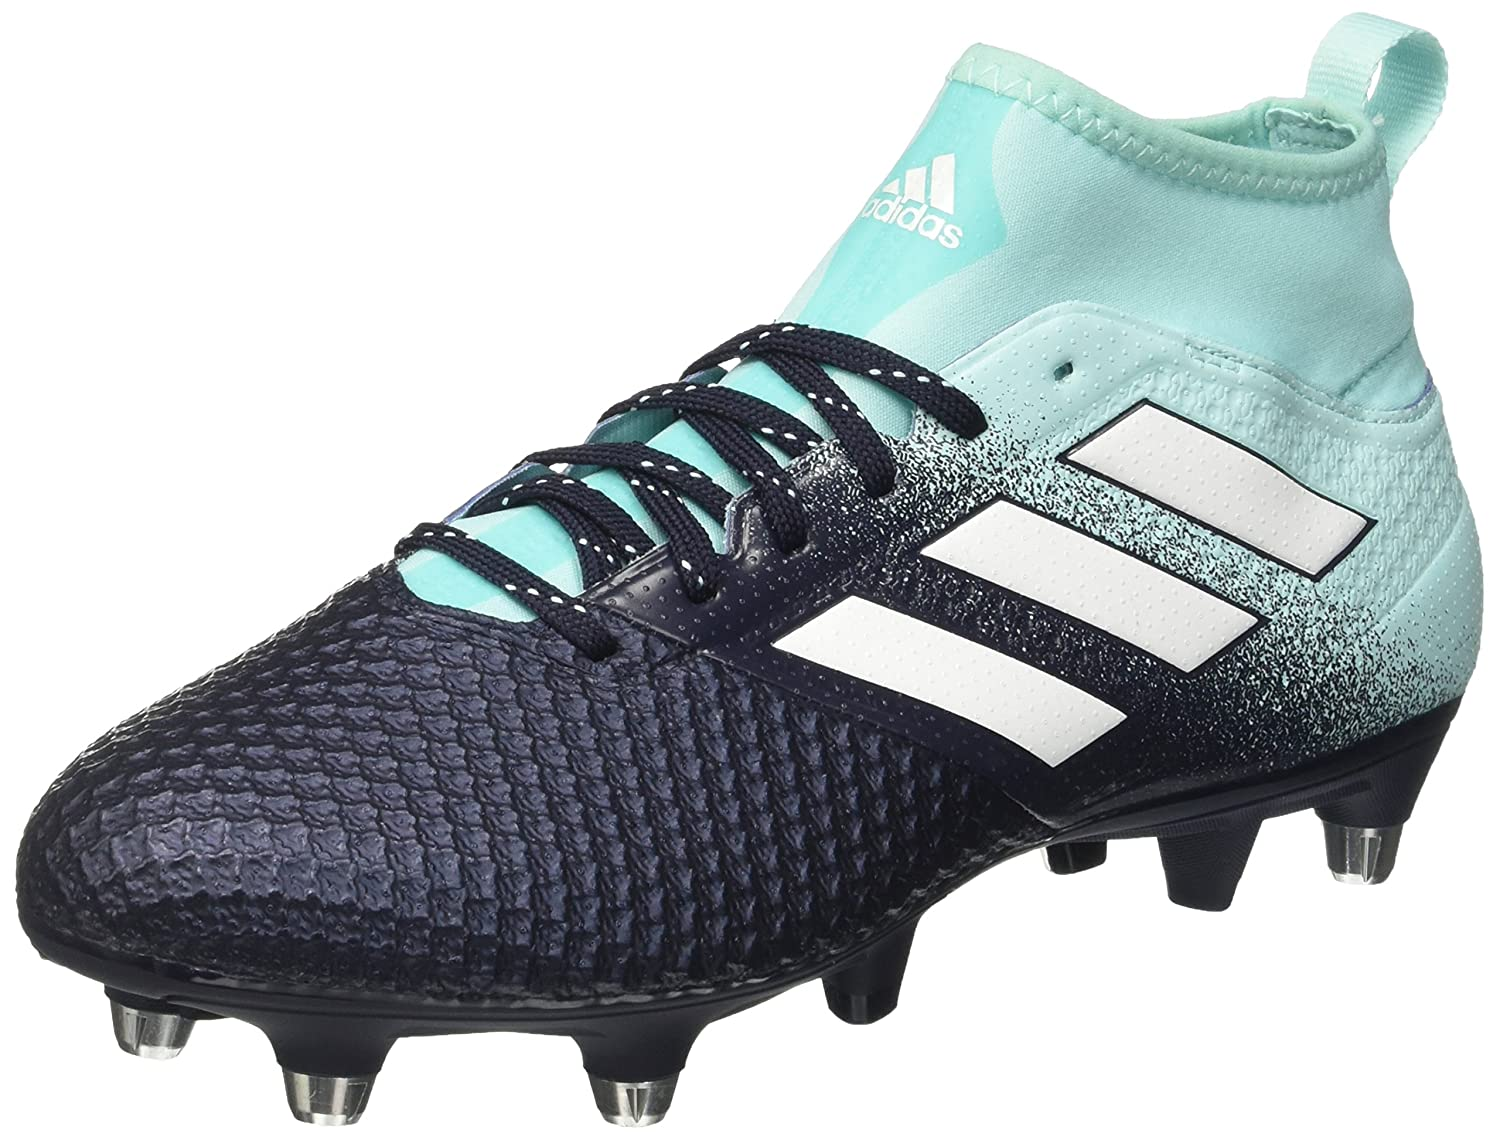 adidas Men's Ace 17.4 Tf Football Boots B01MD14TL7